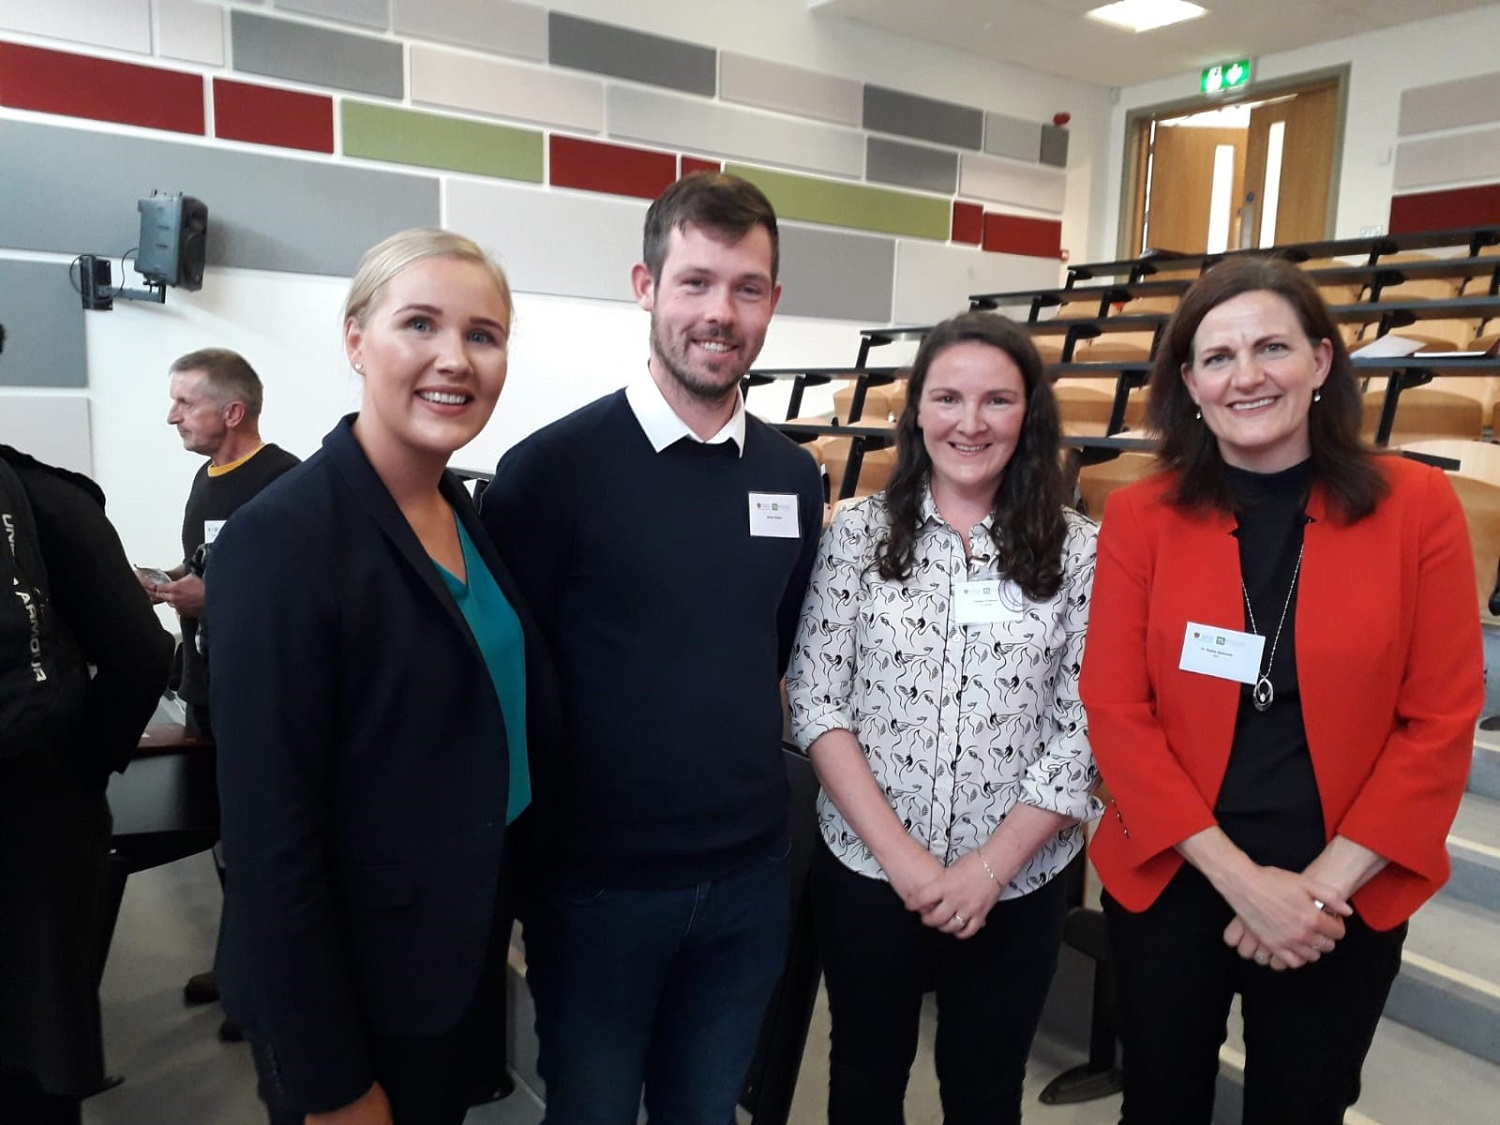 Oral and Poster prize winners Katie O'Toole and James Walters from the BSc in Agricultural Science at WIT with the supervisors Dr Denise O'Meara and Dr Nabla Kennedy